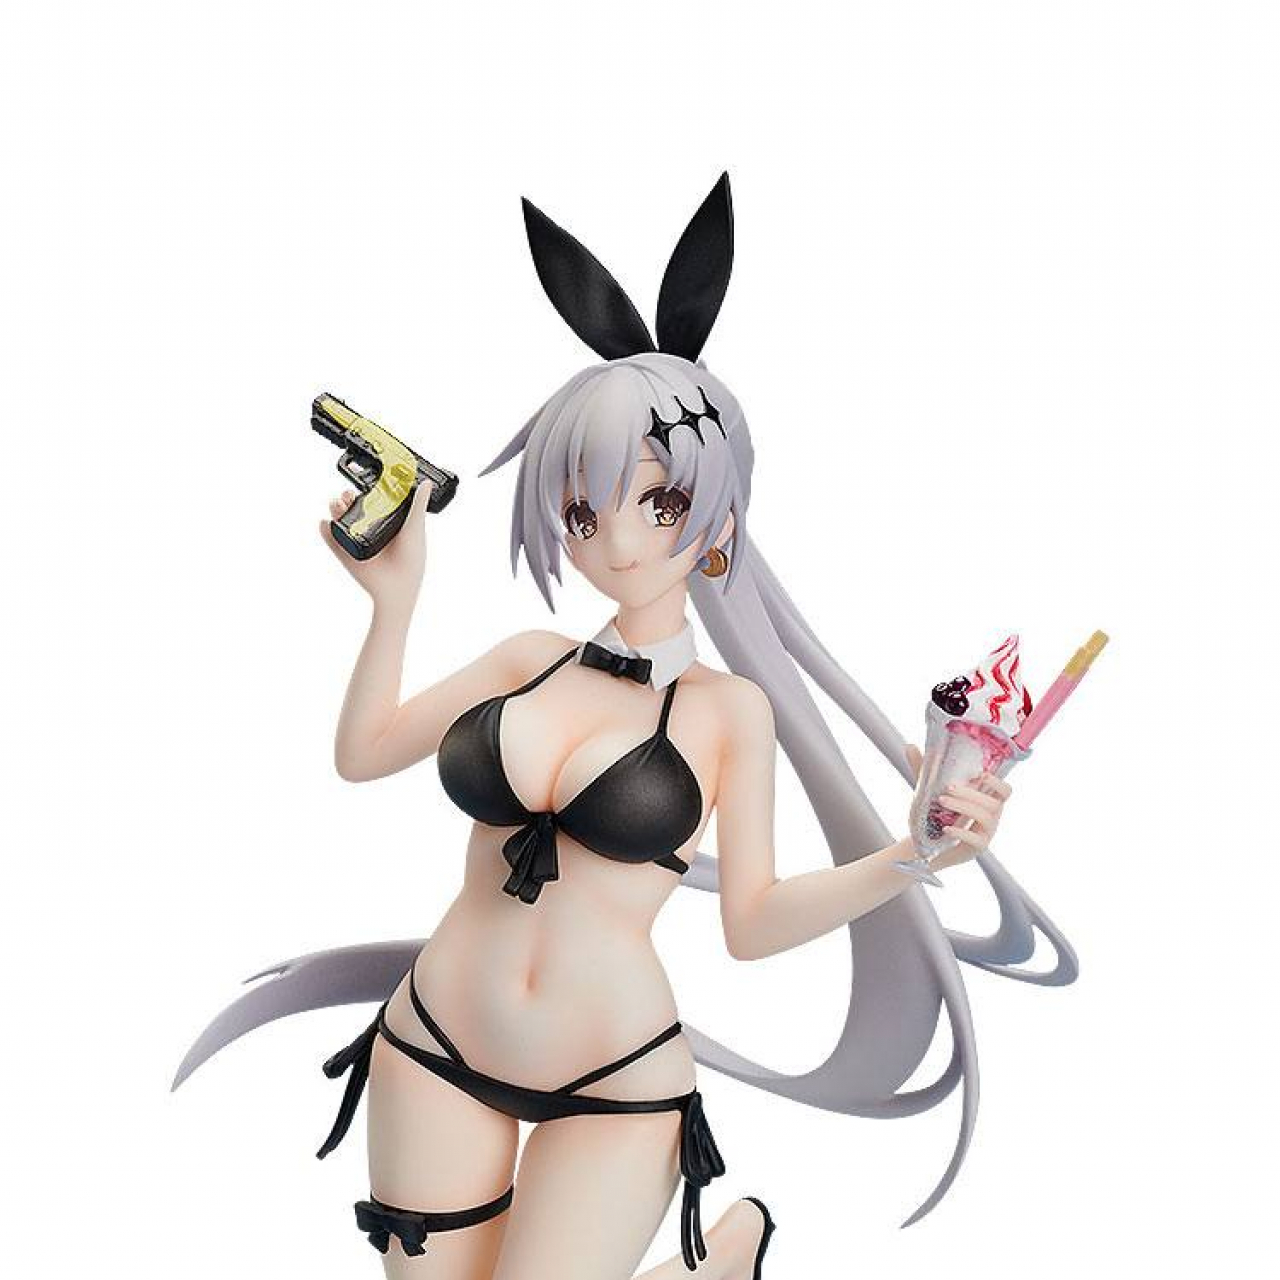 Girls Frontline PVC Statue 1/12 Five-seven: Swimsuit Ver. (Cruise Queen) 16 cm